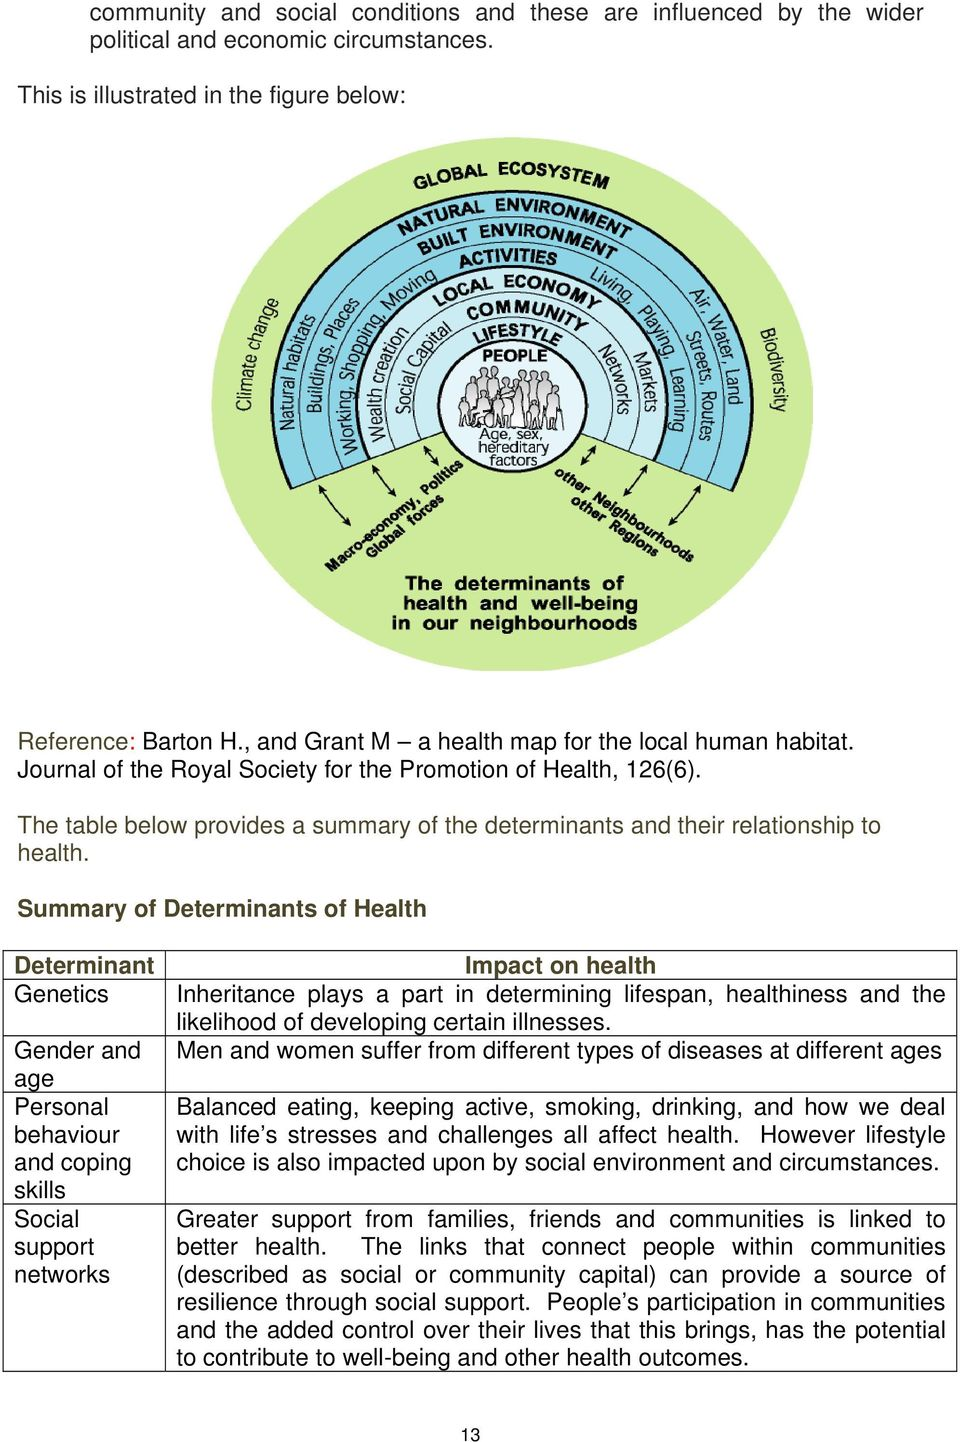 The table below provides a summary of the determinants and their relationship to health.